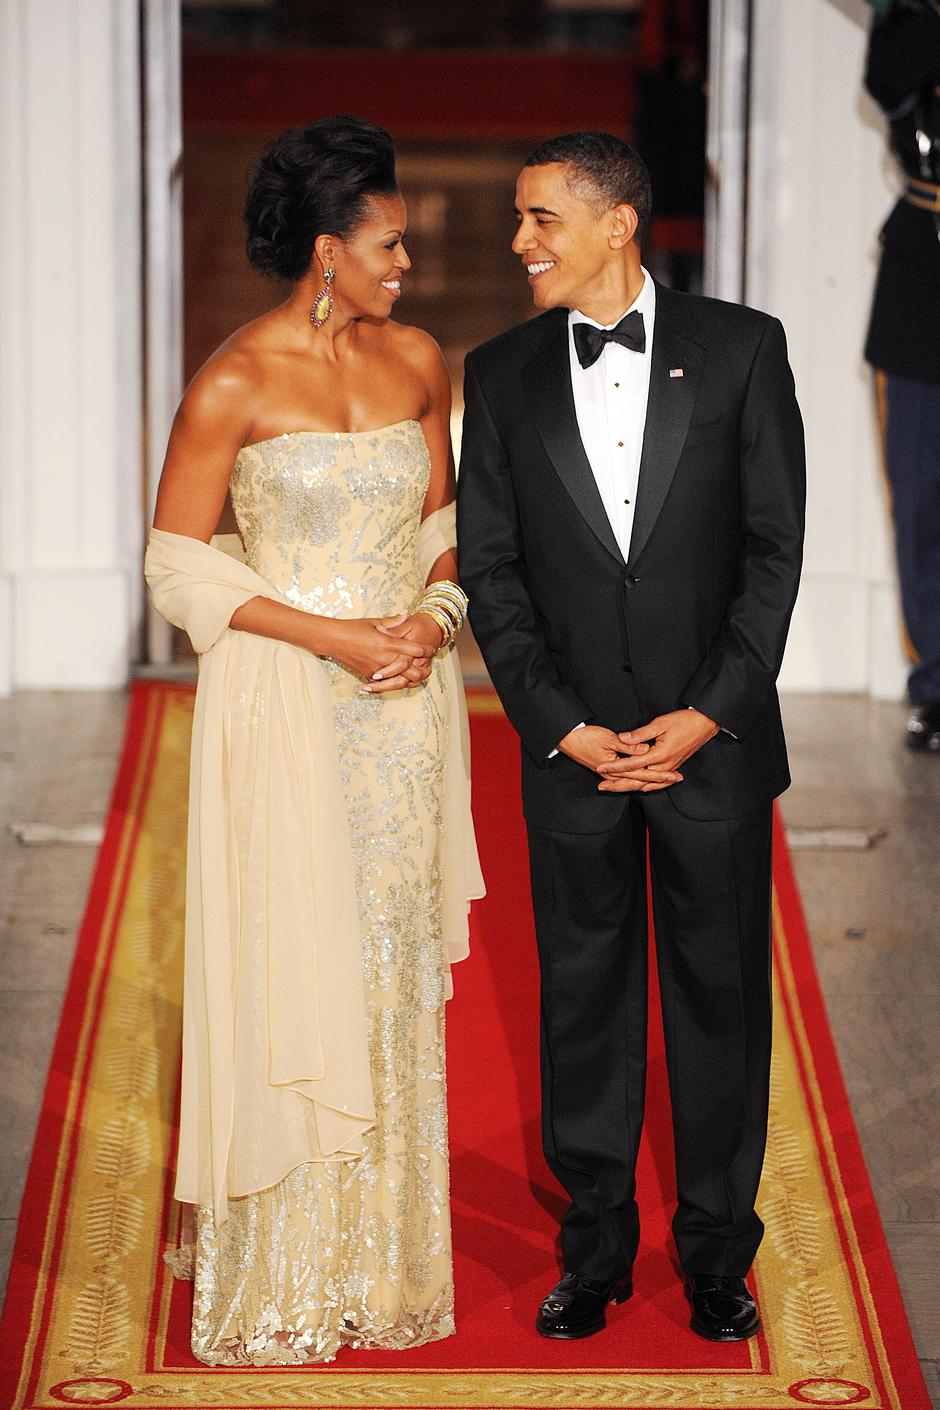 President and First Lady Obama Hosts State Dinner For Indian Prime Minister - DC | Autor: Olivier Douliery/Press Association/PIXSELL